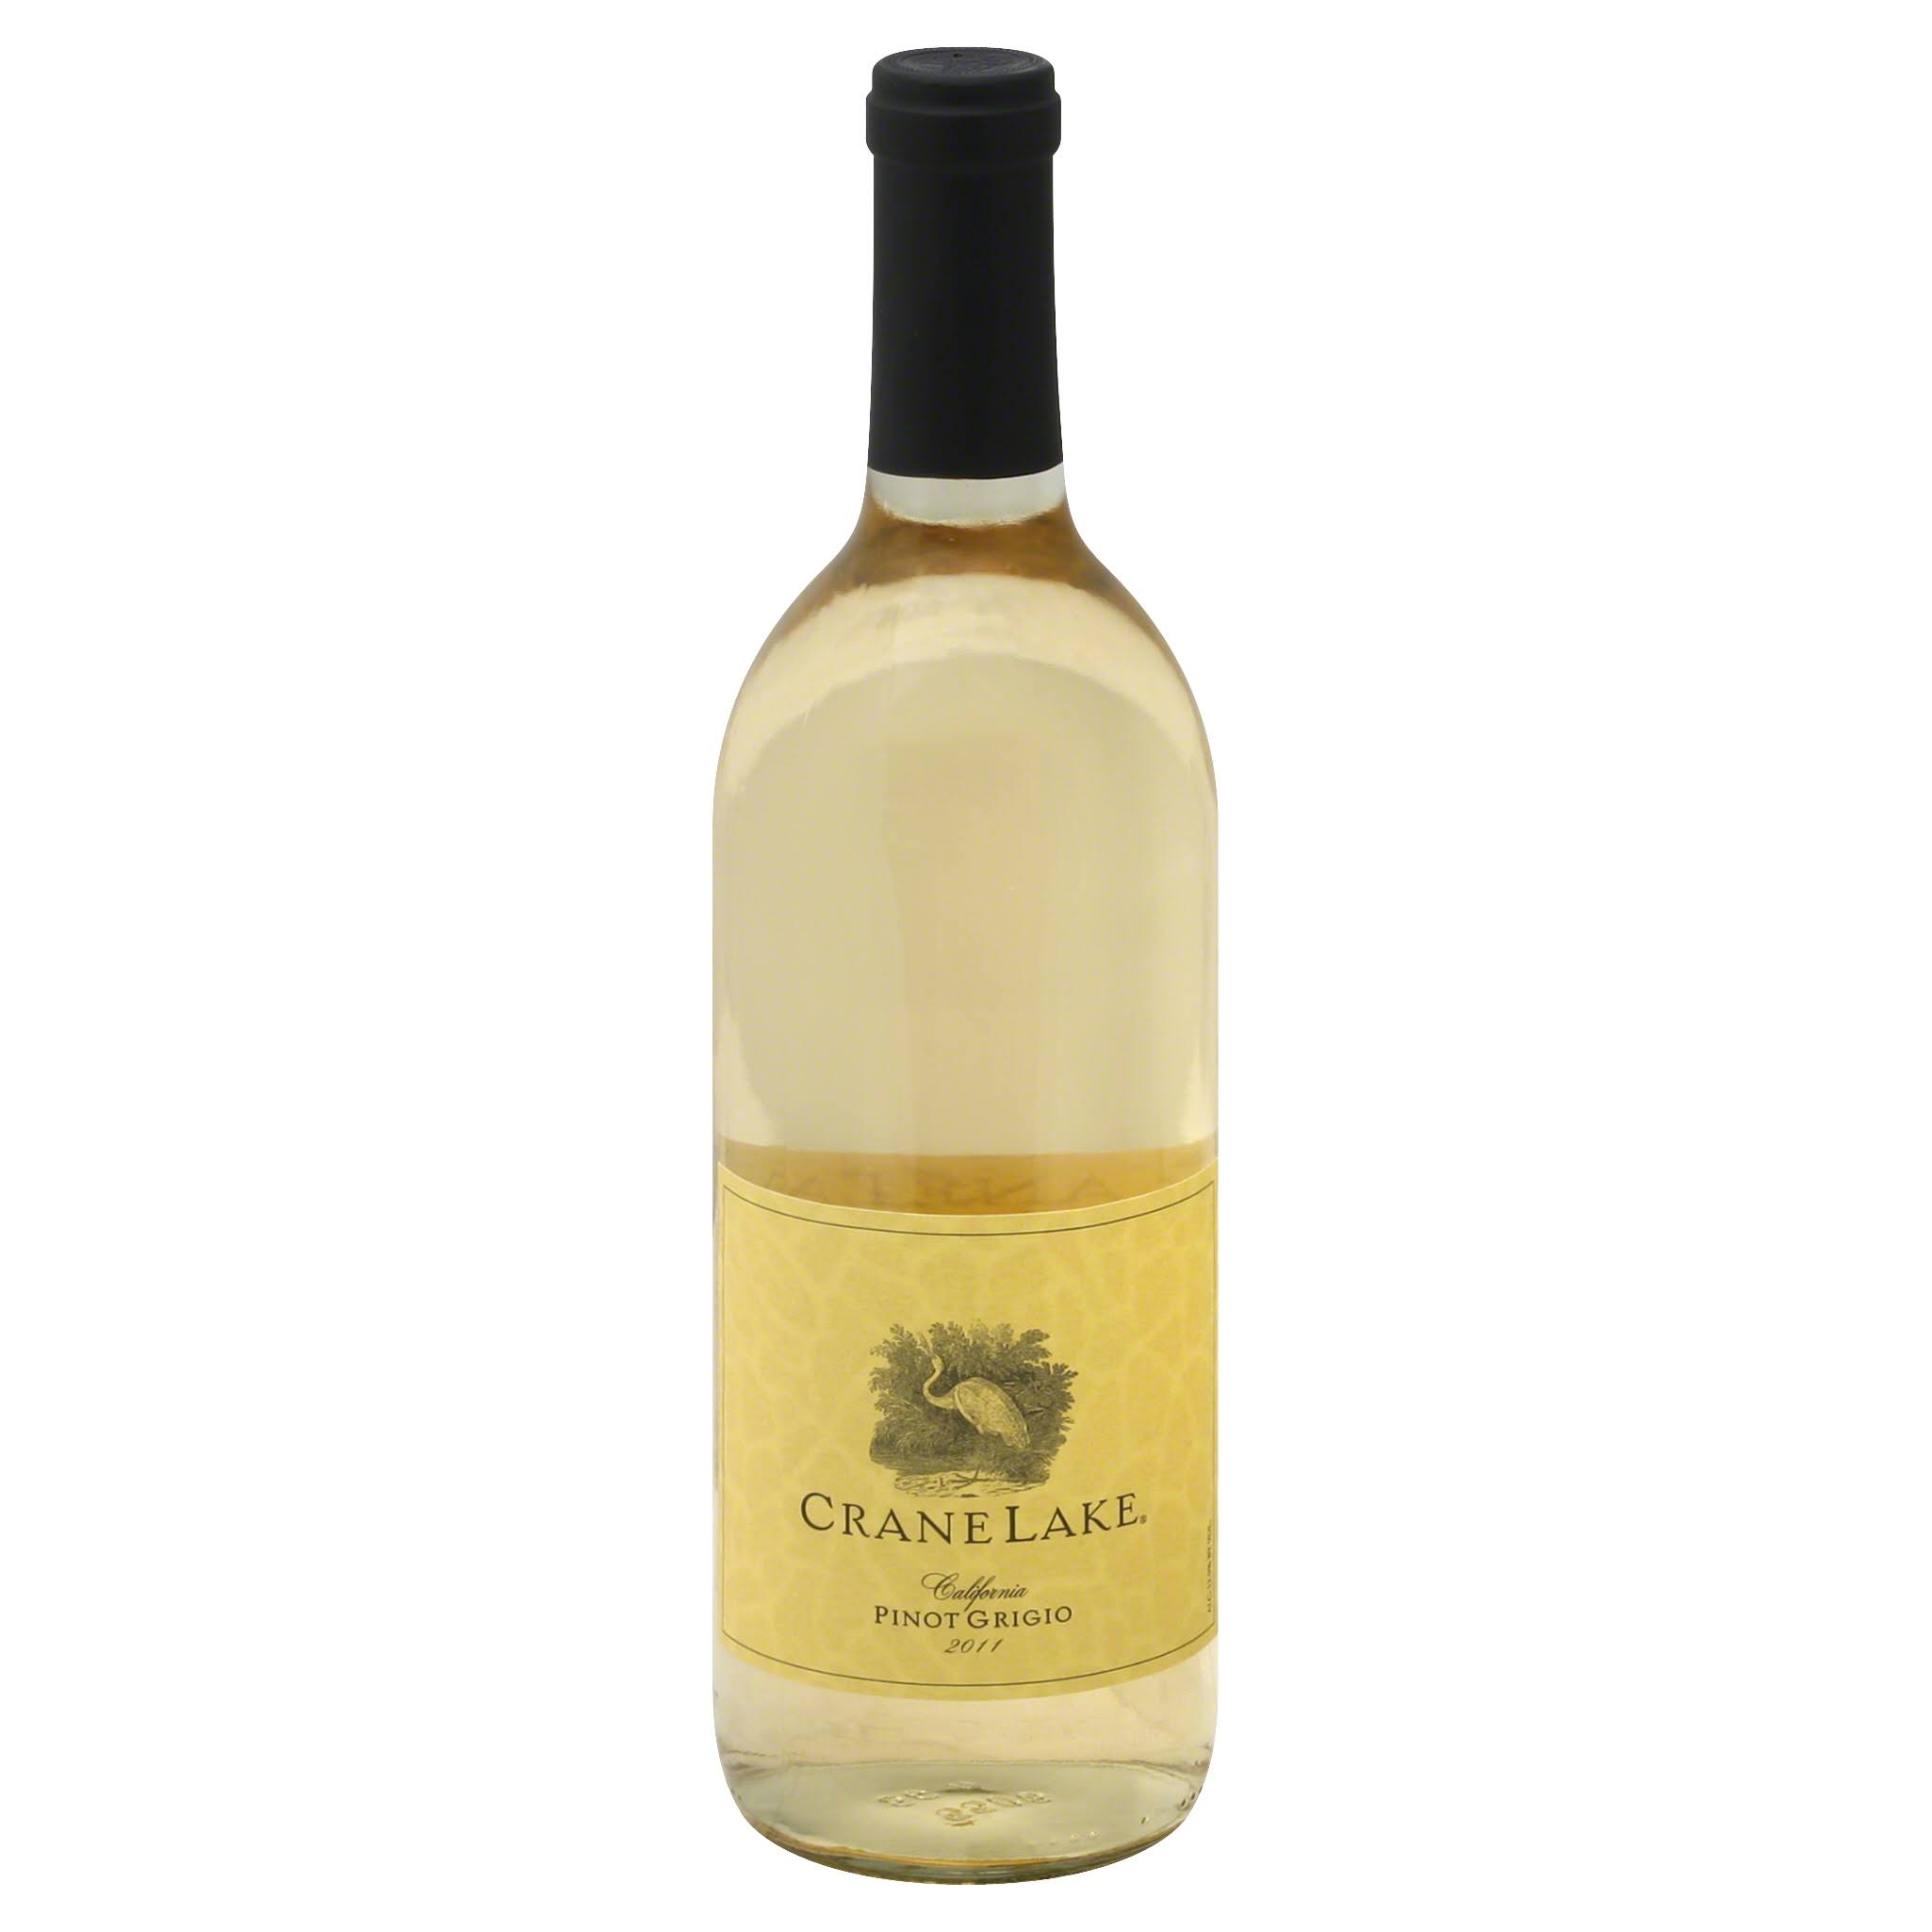 Crane Lake Pinot Grigio, California, 2011 - 750 ml